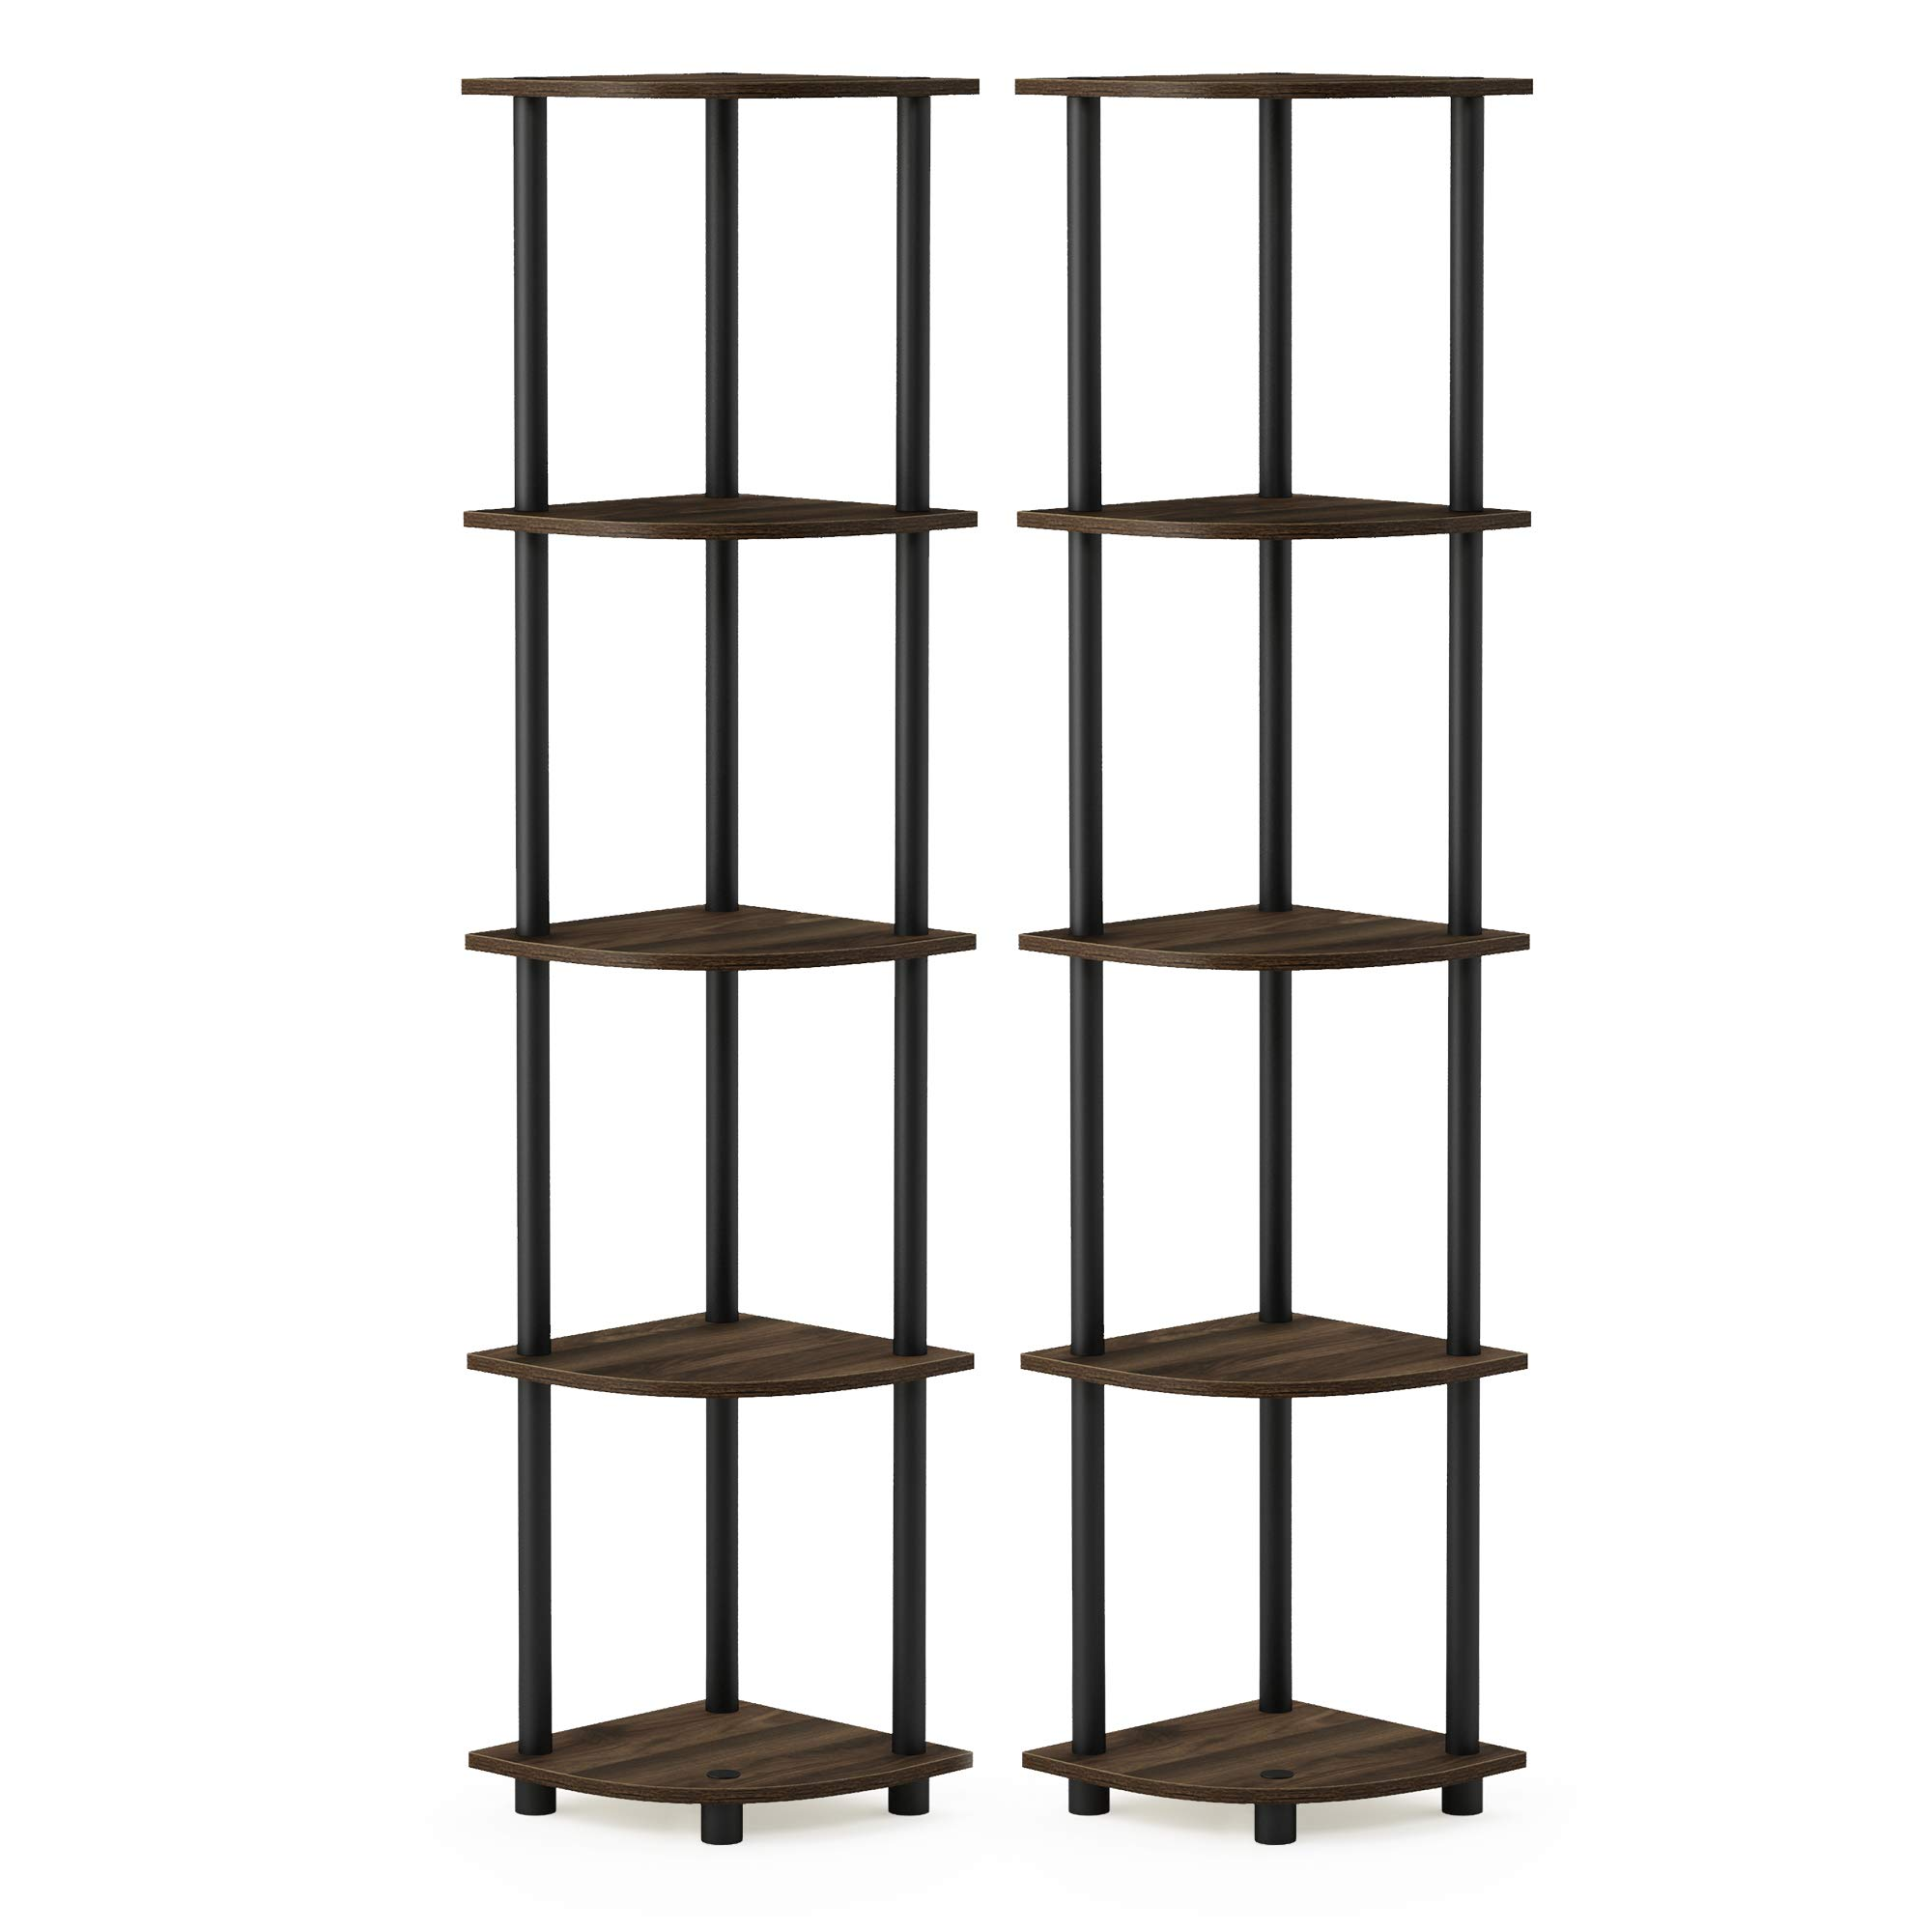 Furinno 2-99811CWN Turn-N-Tube 5 Tier Corner Display Rack 2 Pack, Columbia Walnut/Black